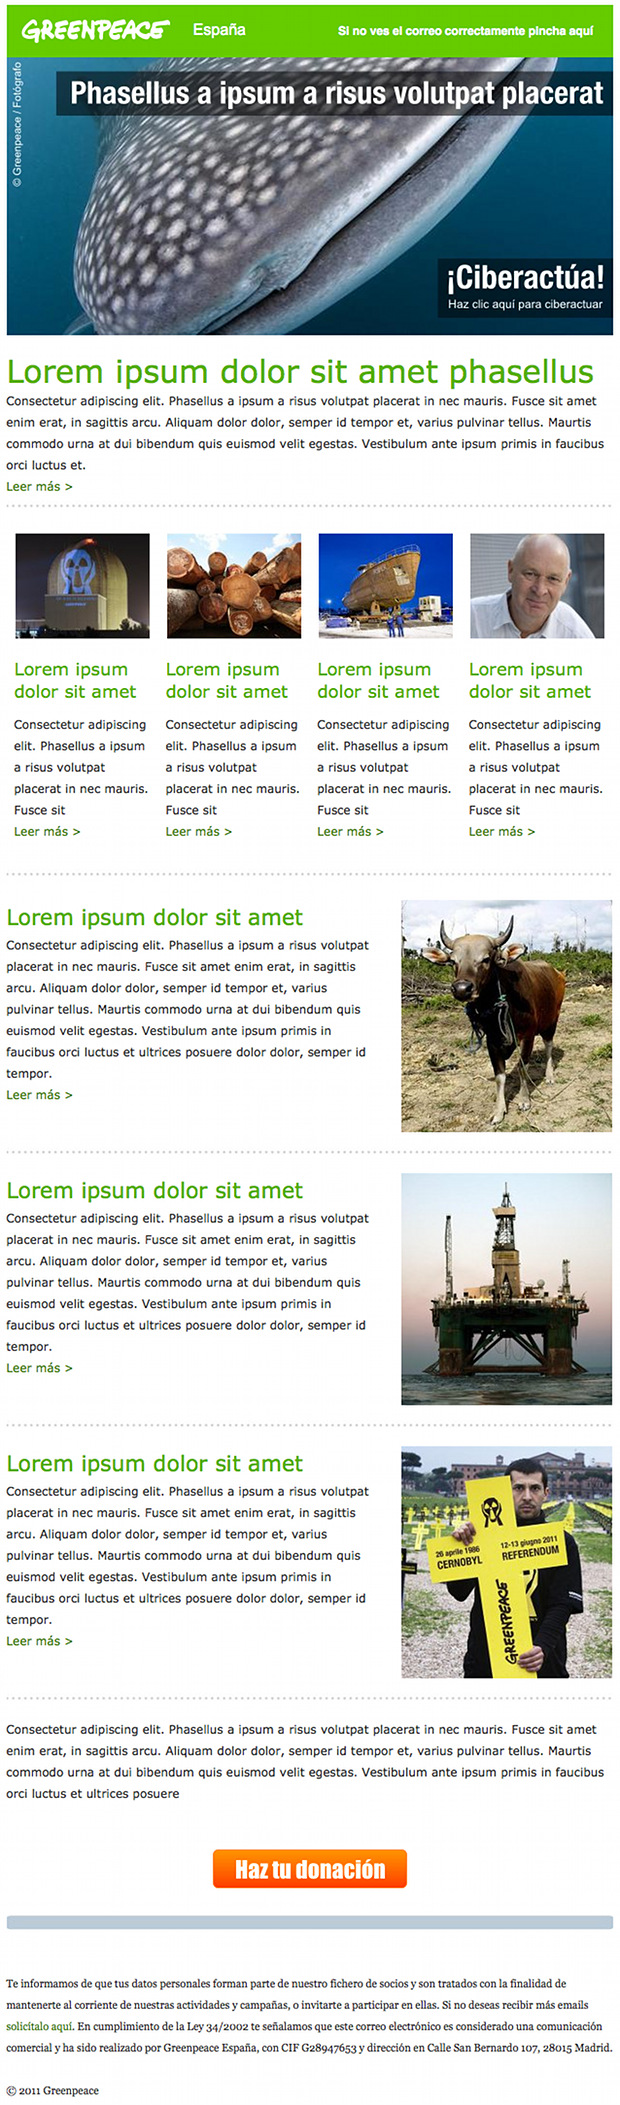 Greenpeace's montly newsletter email template